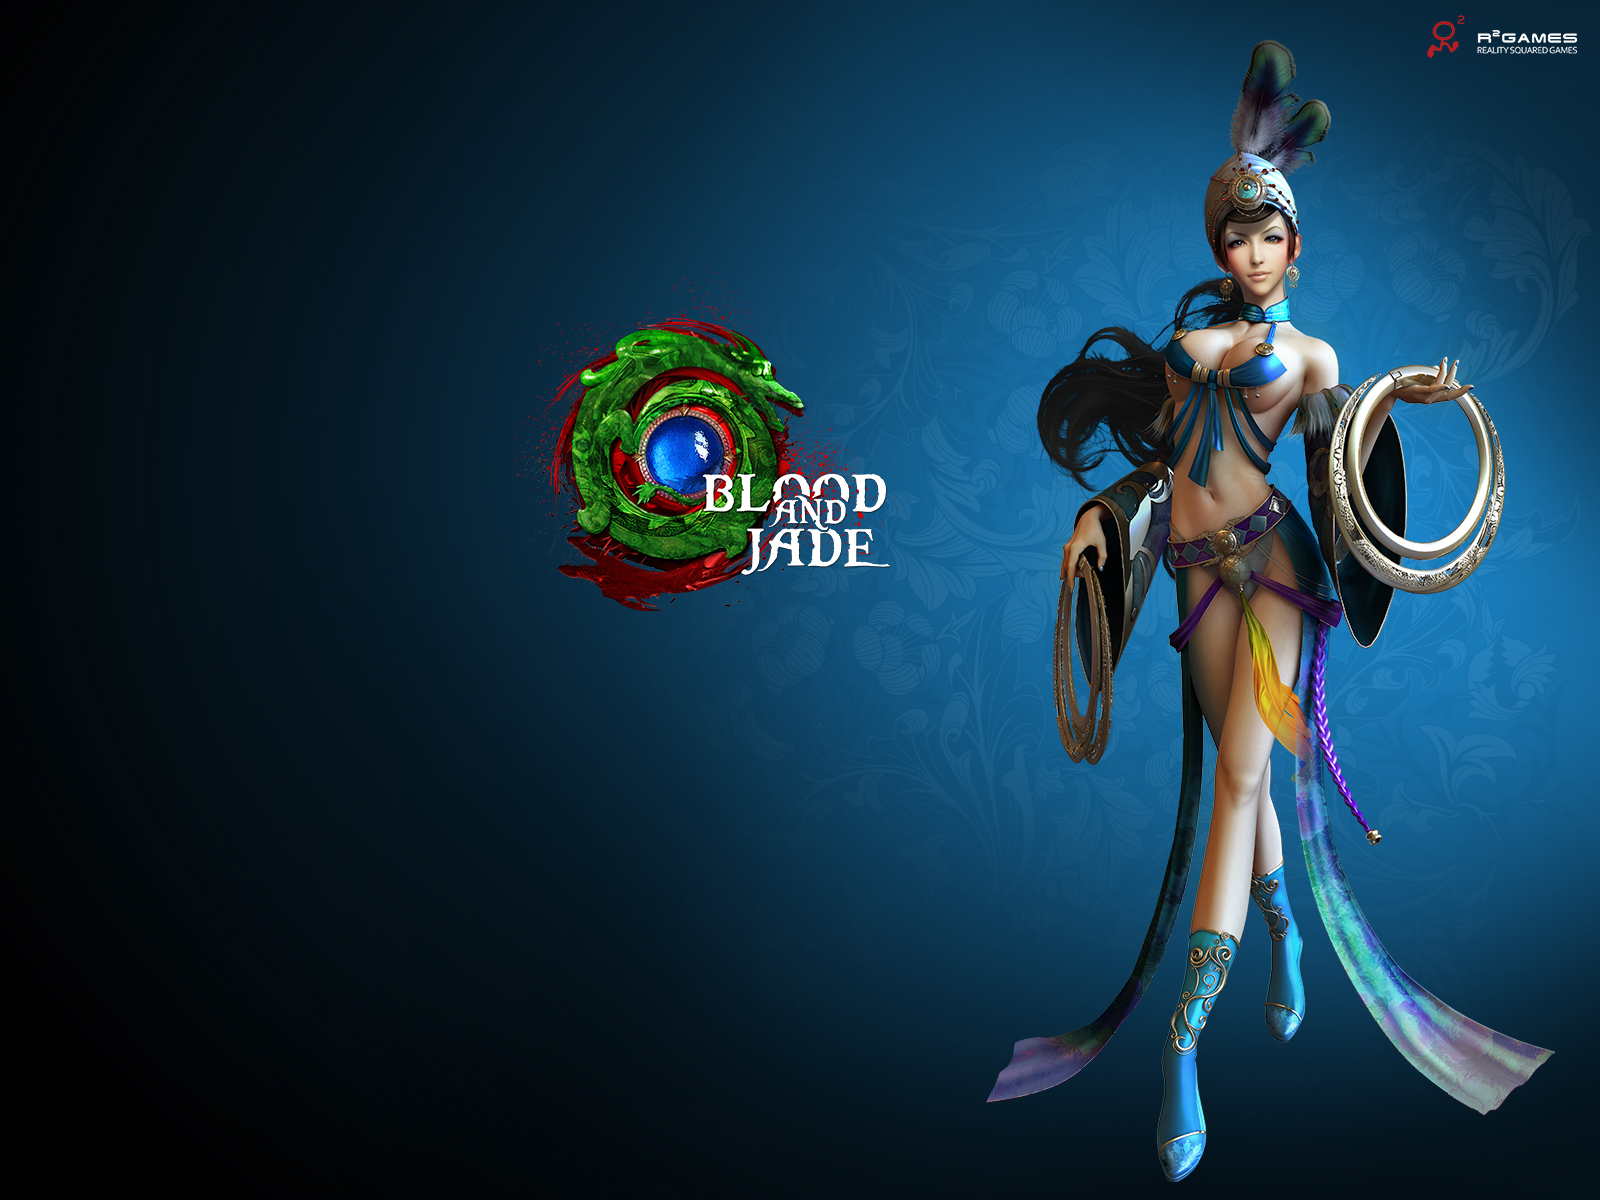 Blood and jade girl hot sexy wallpapers sexy toons